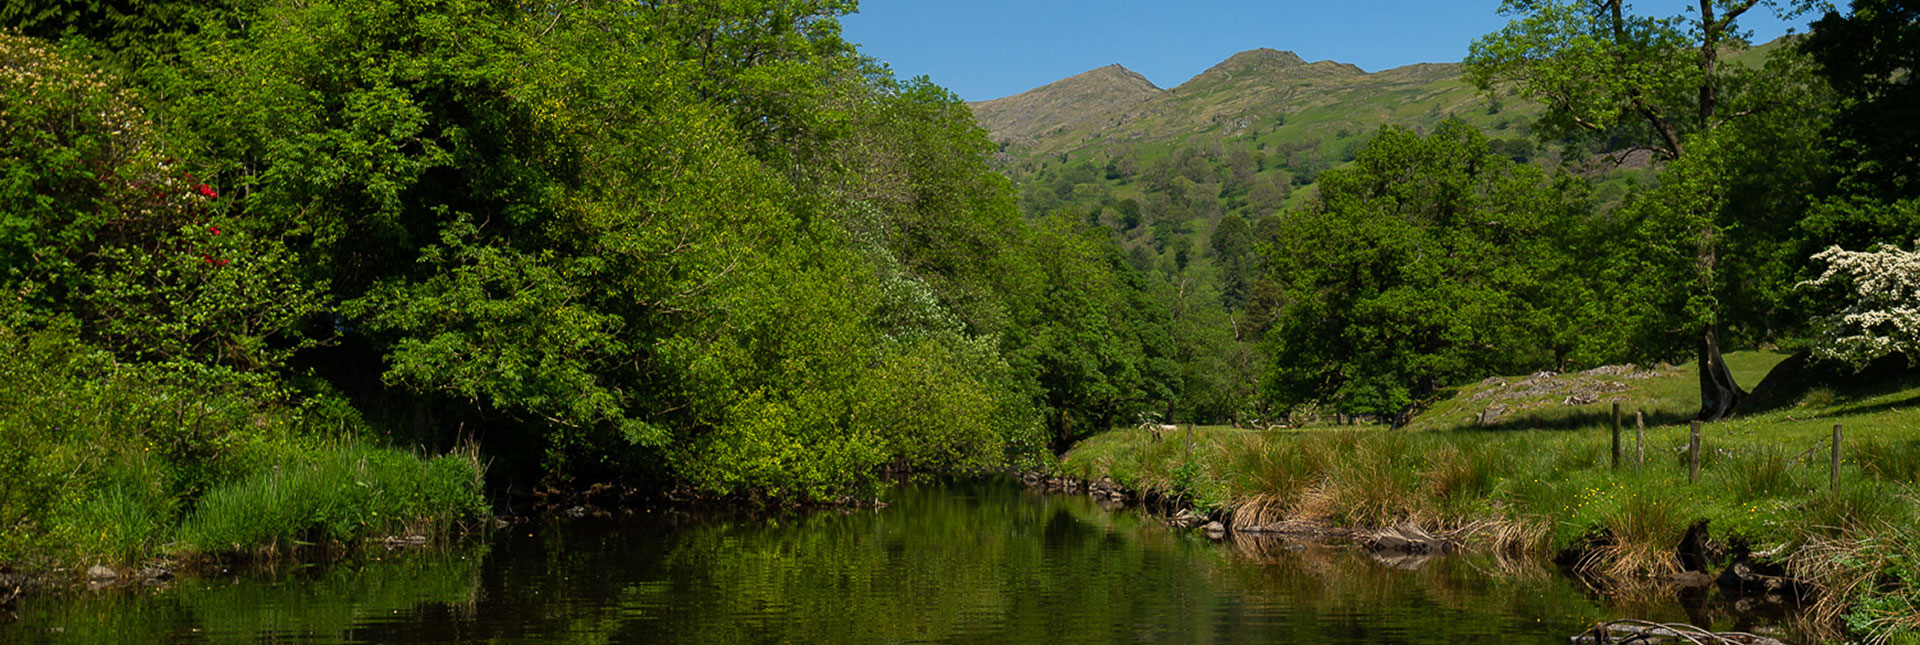 Riverside-Terrace-Ambleside-109.jpg